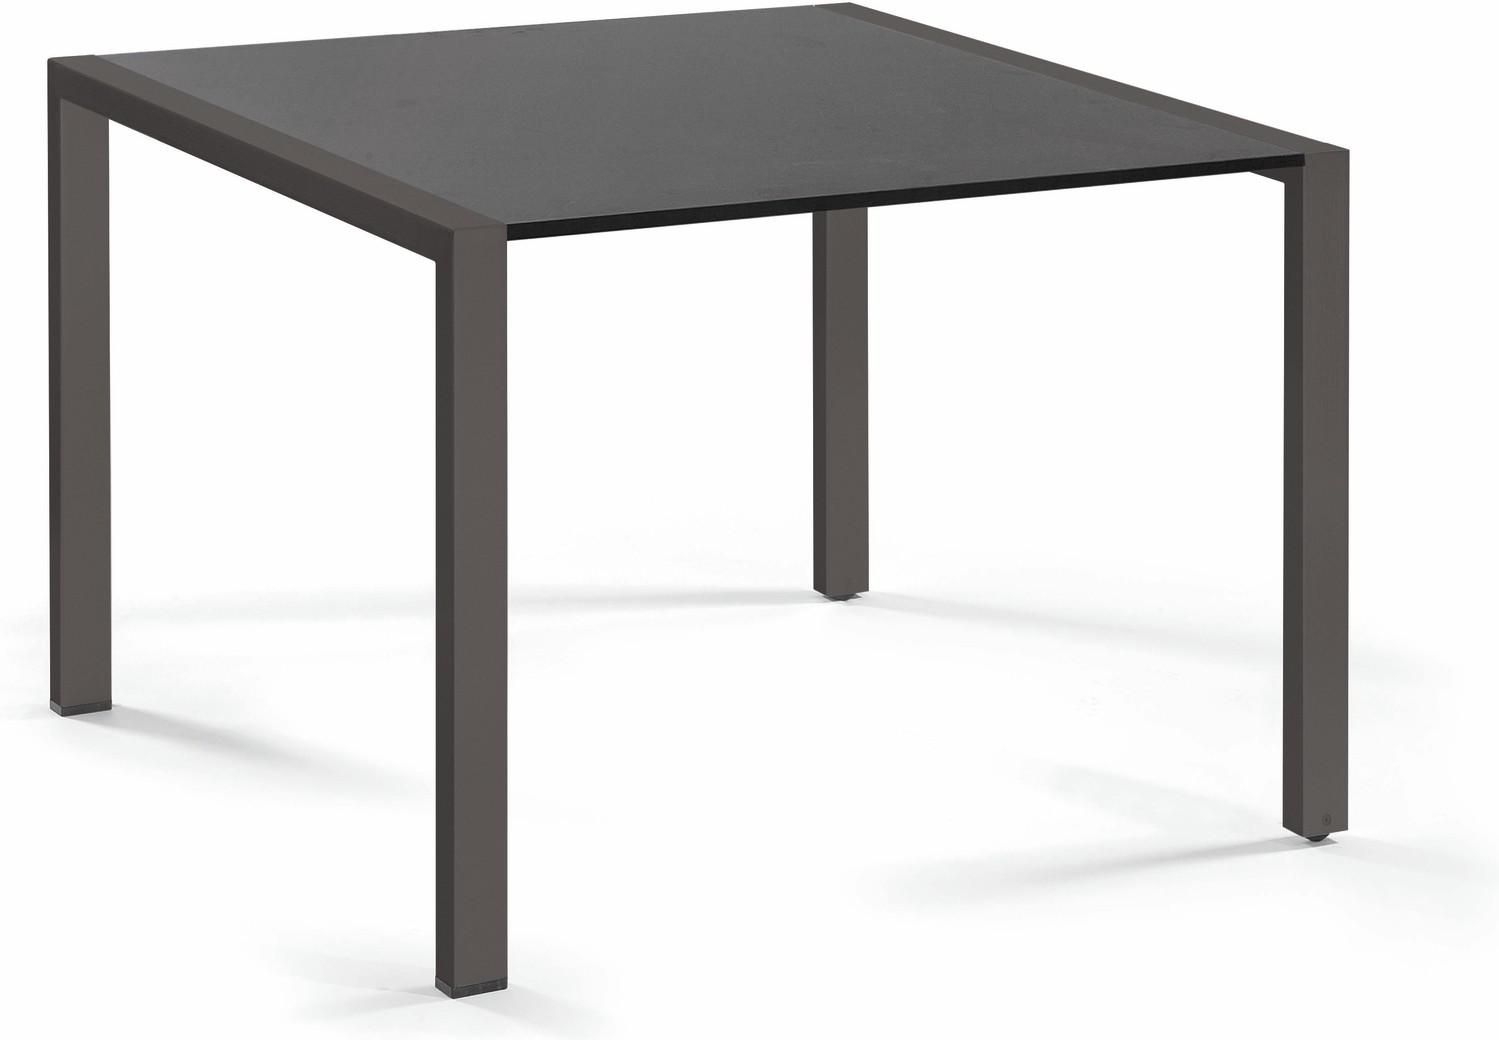 Trento Dining table - glass black GLB 90